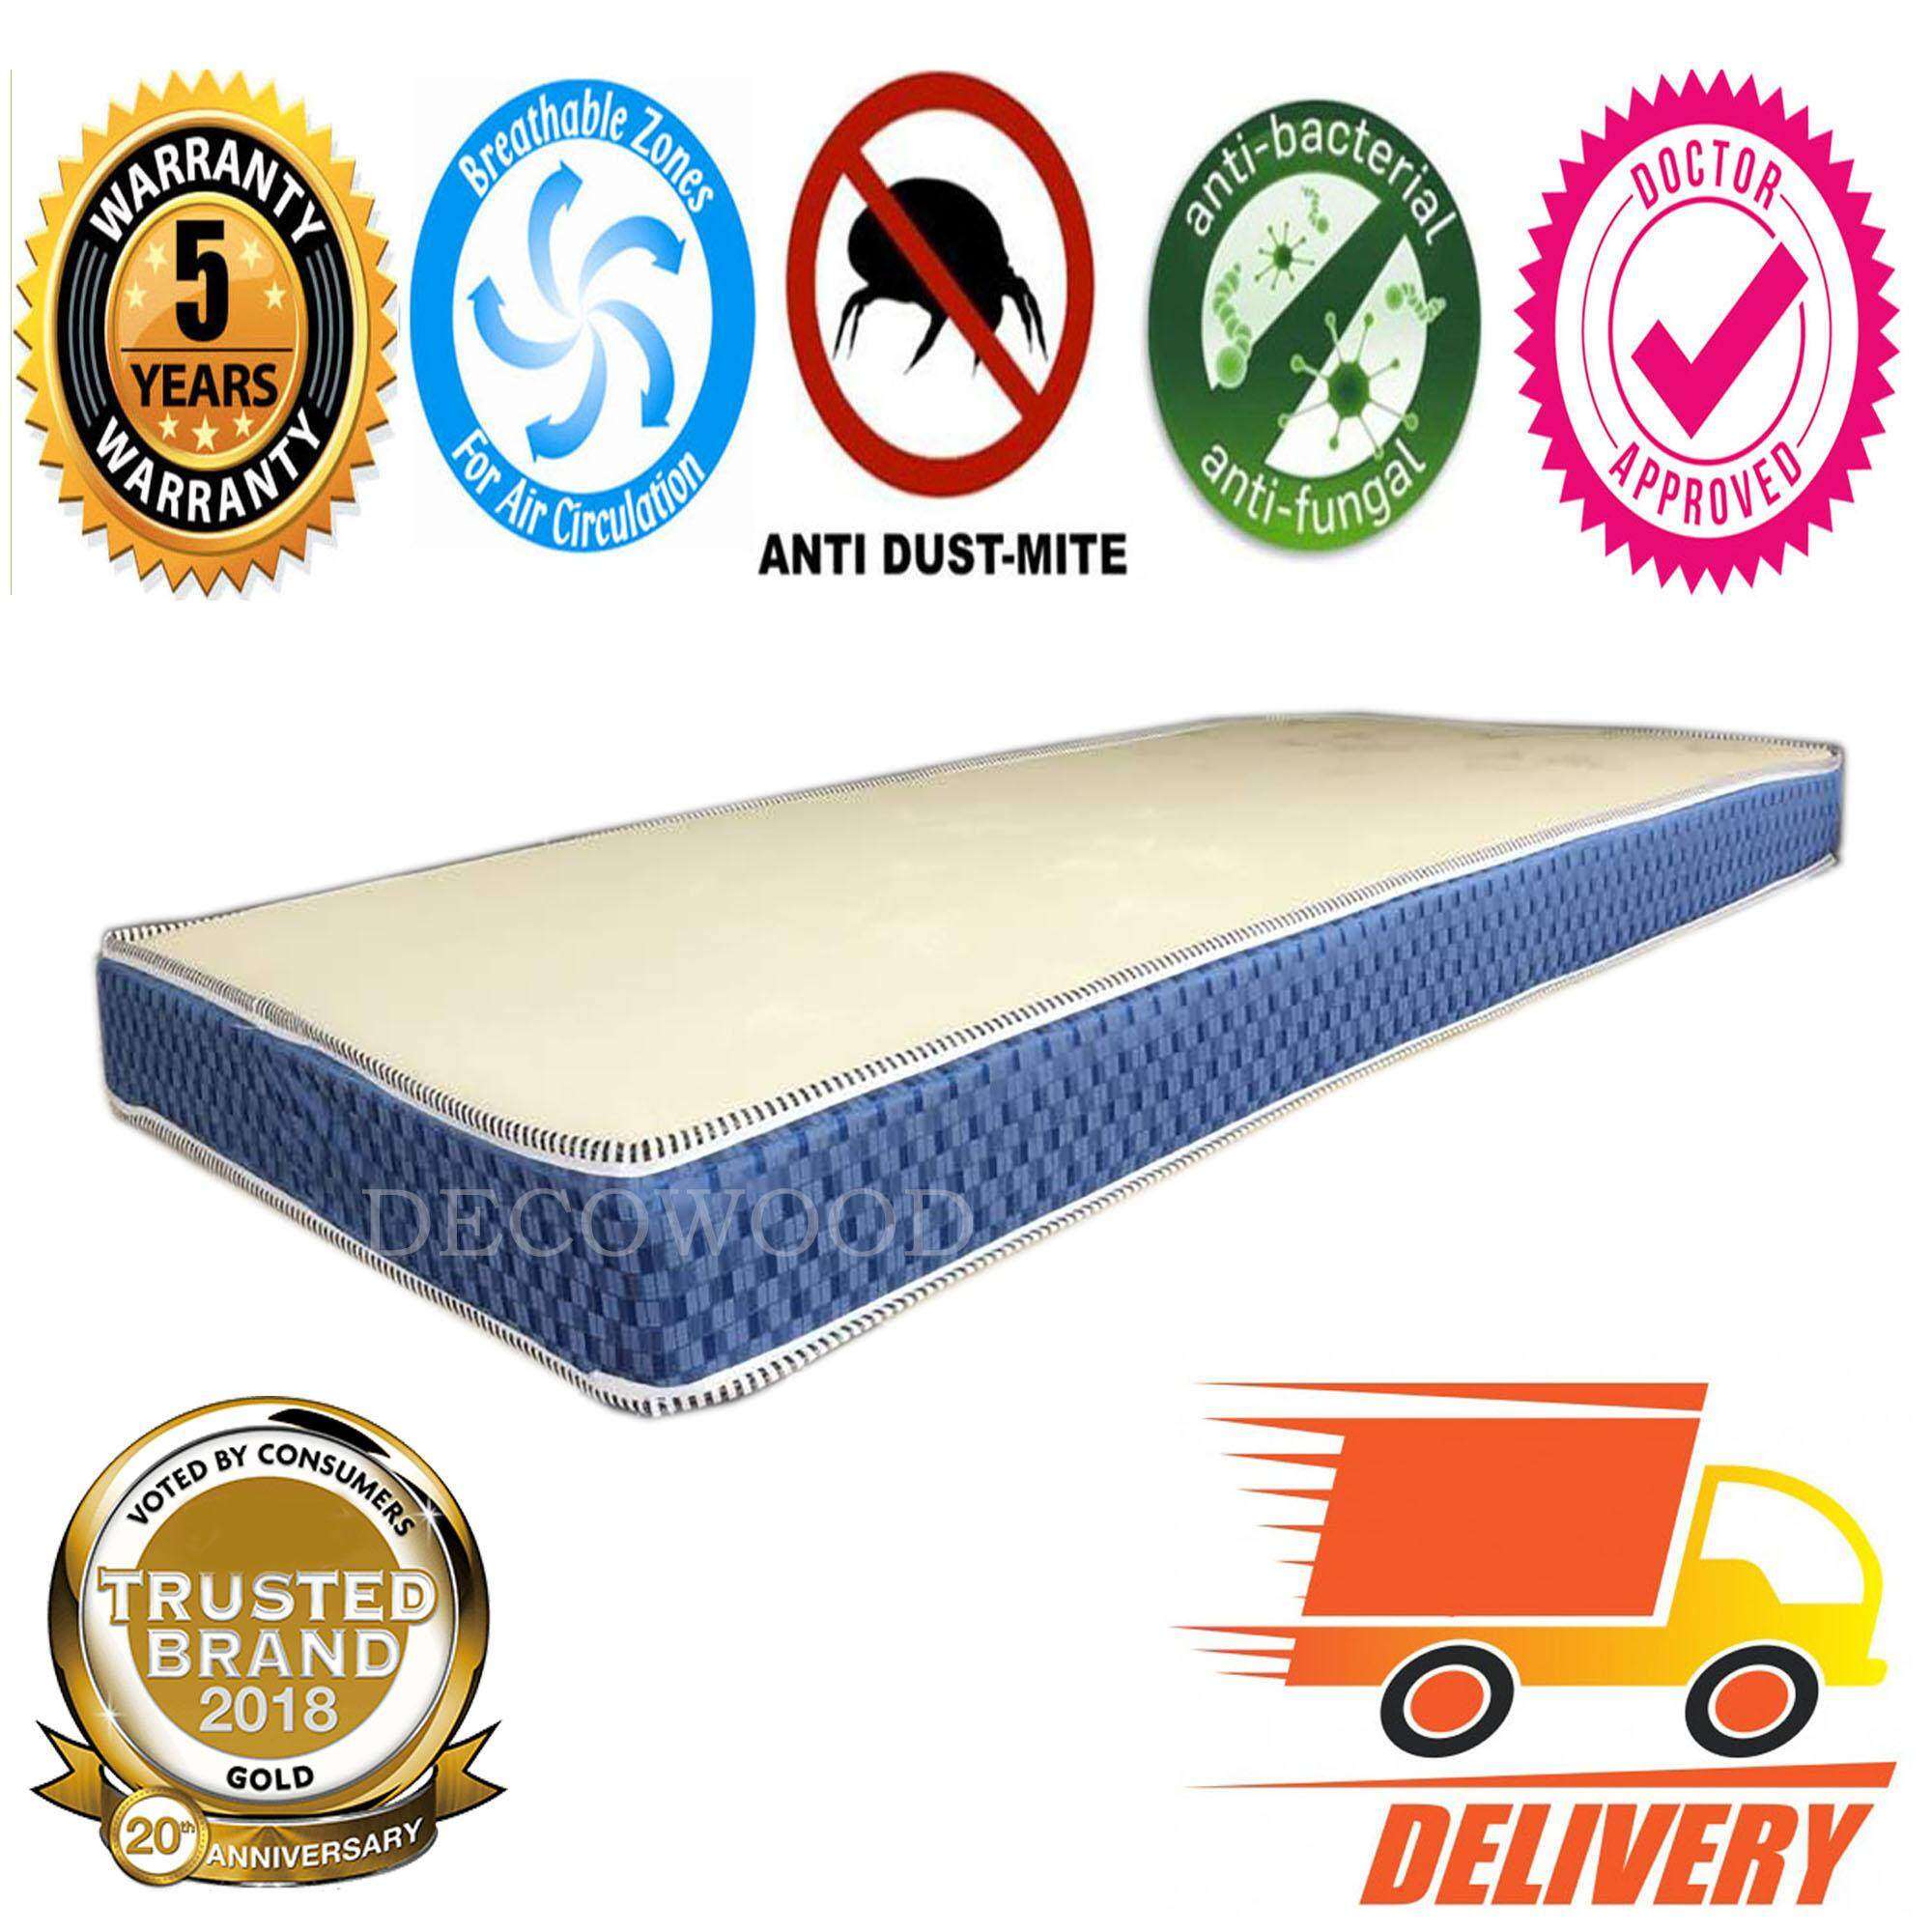 Spinal-Cure 5 Inches Natural Foam Posture Mattress Single Mattress Tilam - Single Size By Decowood.